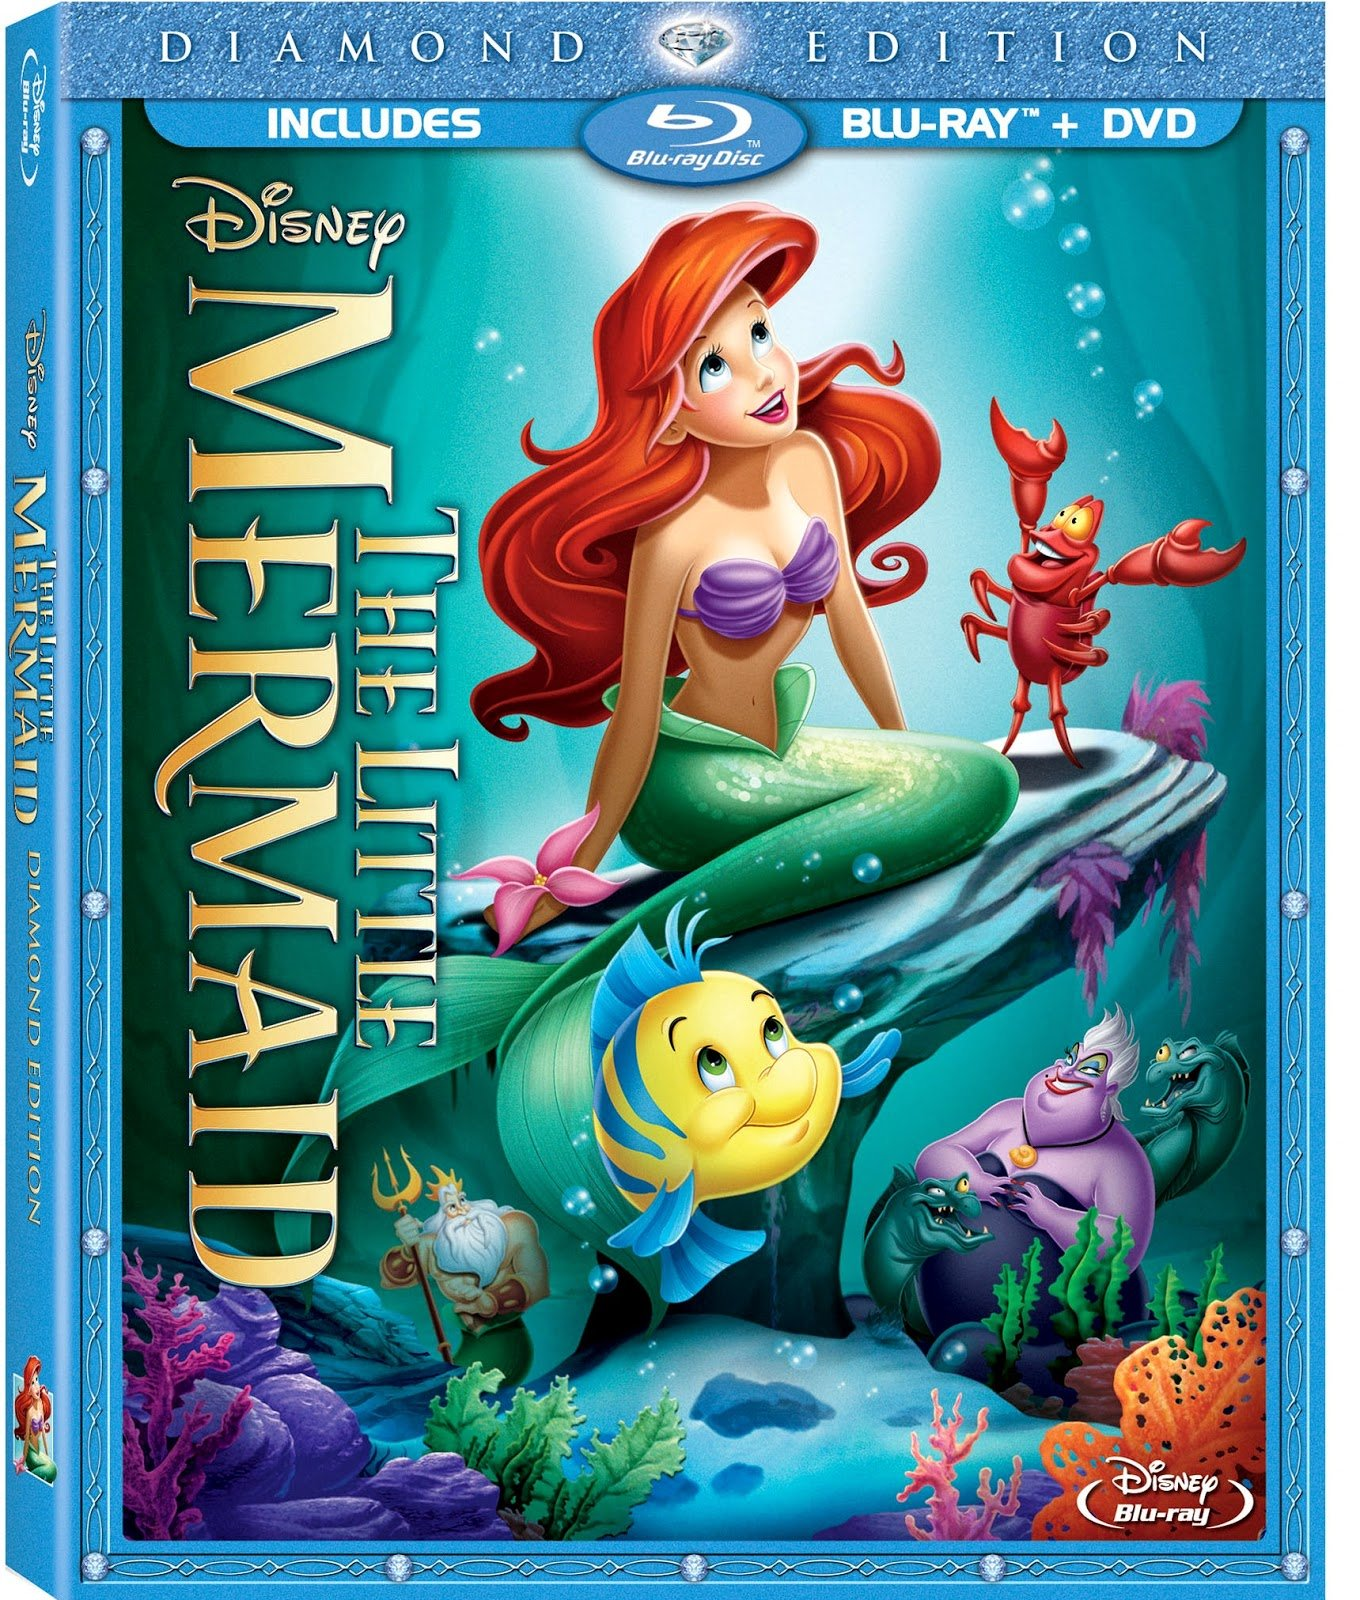 Download The Little Mermaid 1989 1080p BluRay x265 HEVC 10bit AAC